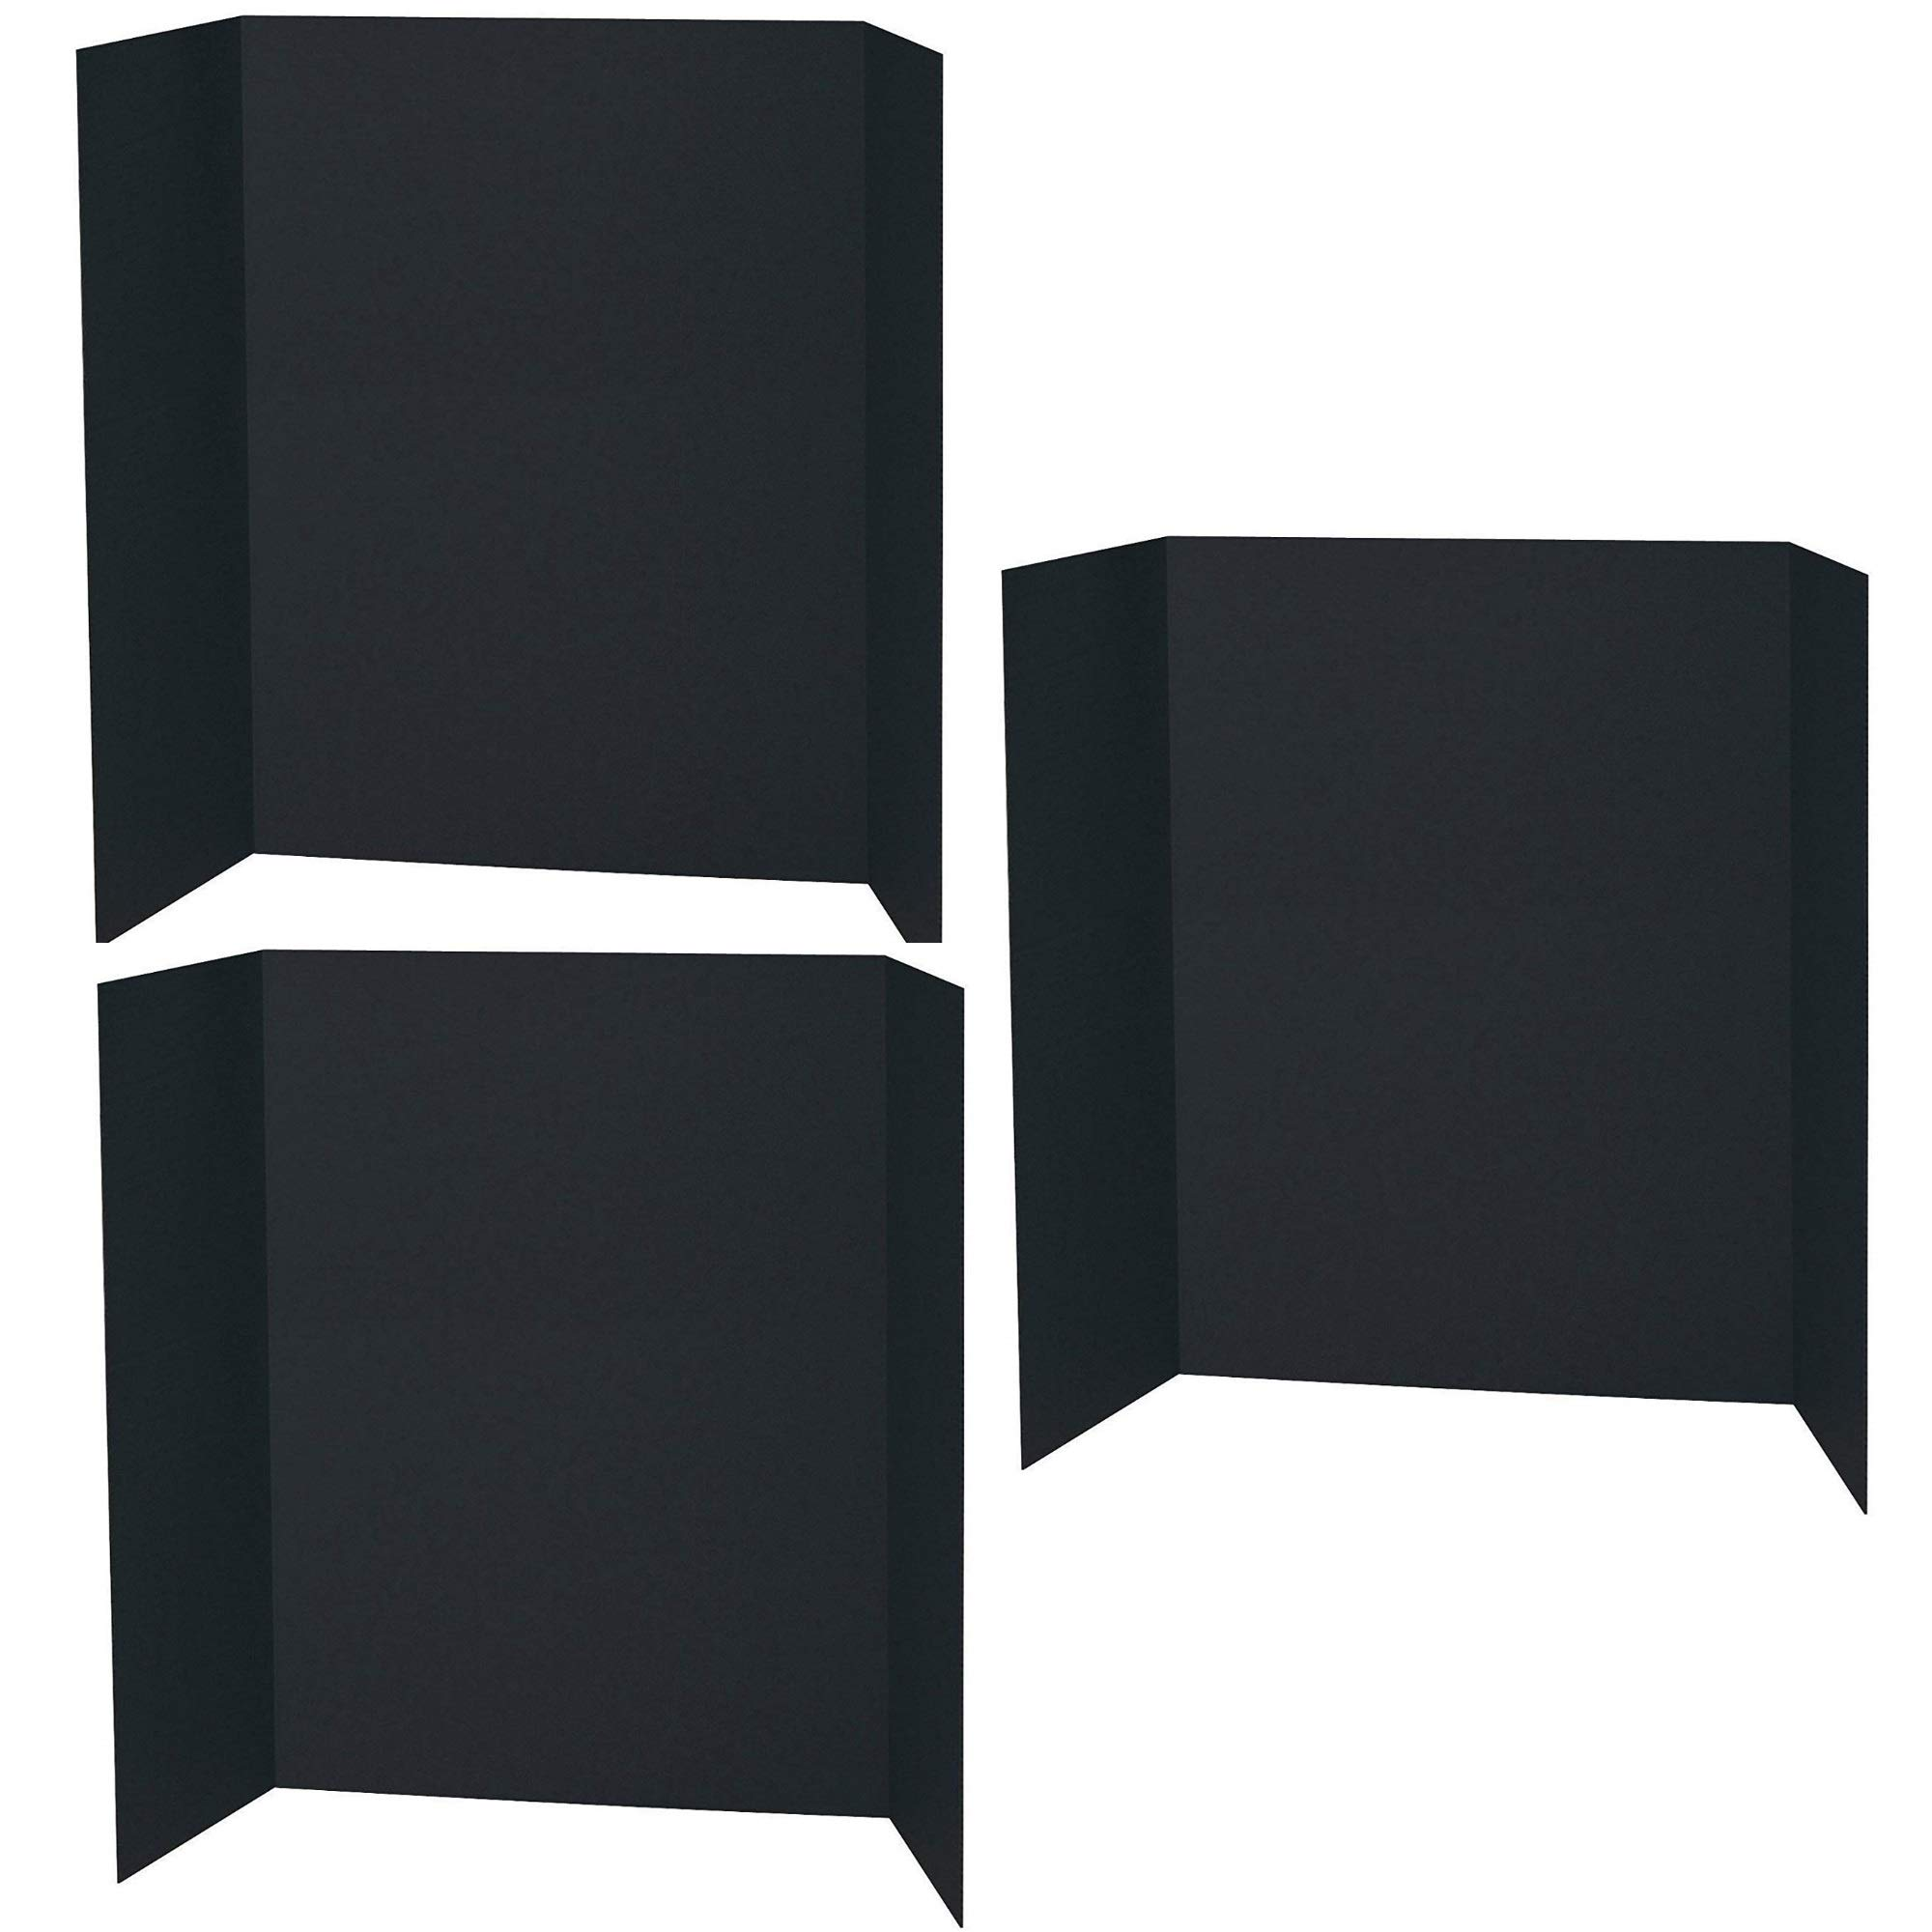 Spotlight Display Board - 48 x 36 Inches - 1 Ply Black, 3 Pack by PACON